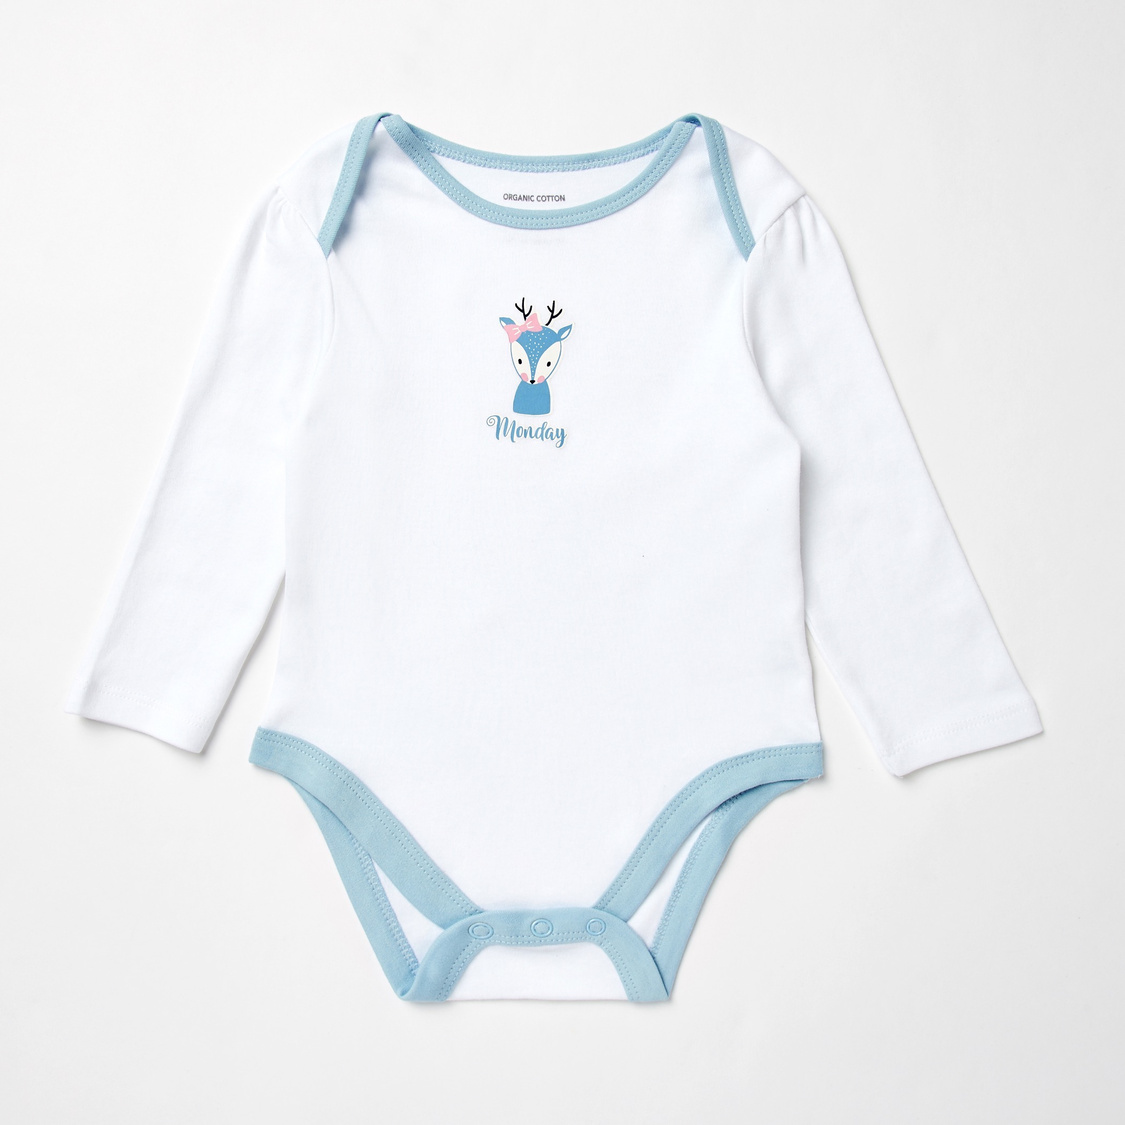 Set of 7 - Printed GOTS Organic Cotton Bodysuit with Long Sleeves